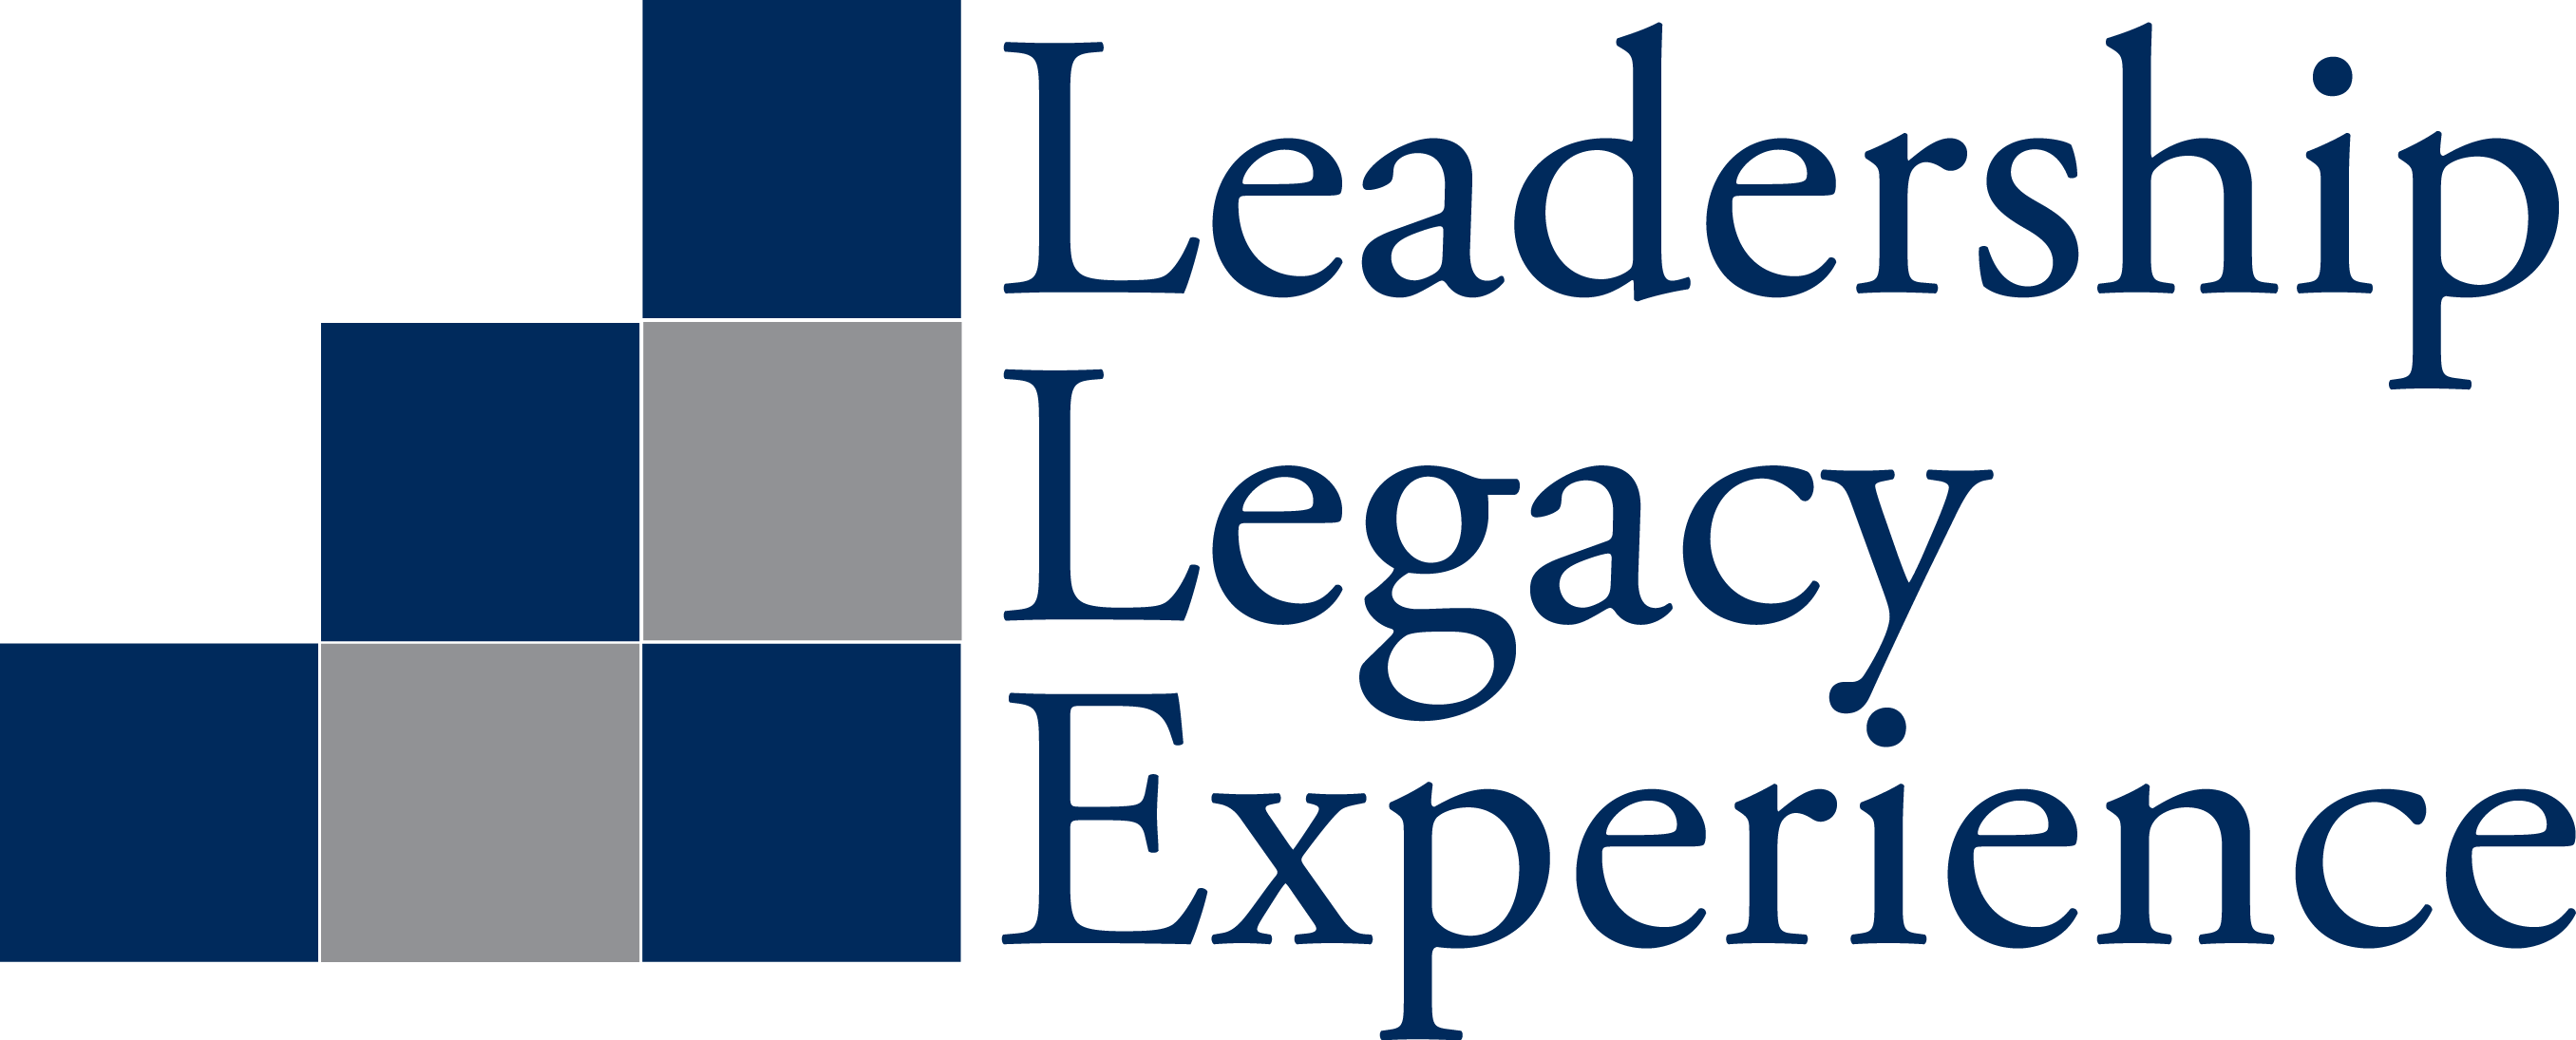 leadership legacy The legacy of respect and understanding has defined our leadership model since 1956 at packages, the underlying values of leadership are integrity, passion, courage, drive, care and humility our diligent leaders always seek to maximize the present and utilize the future.